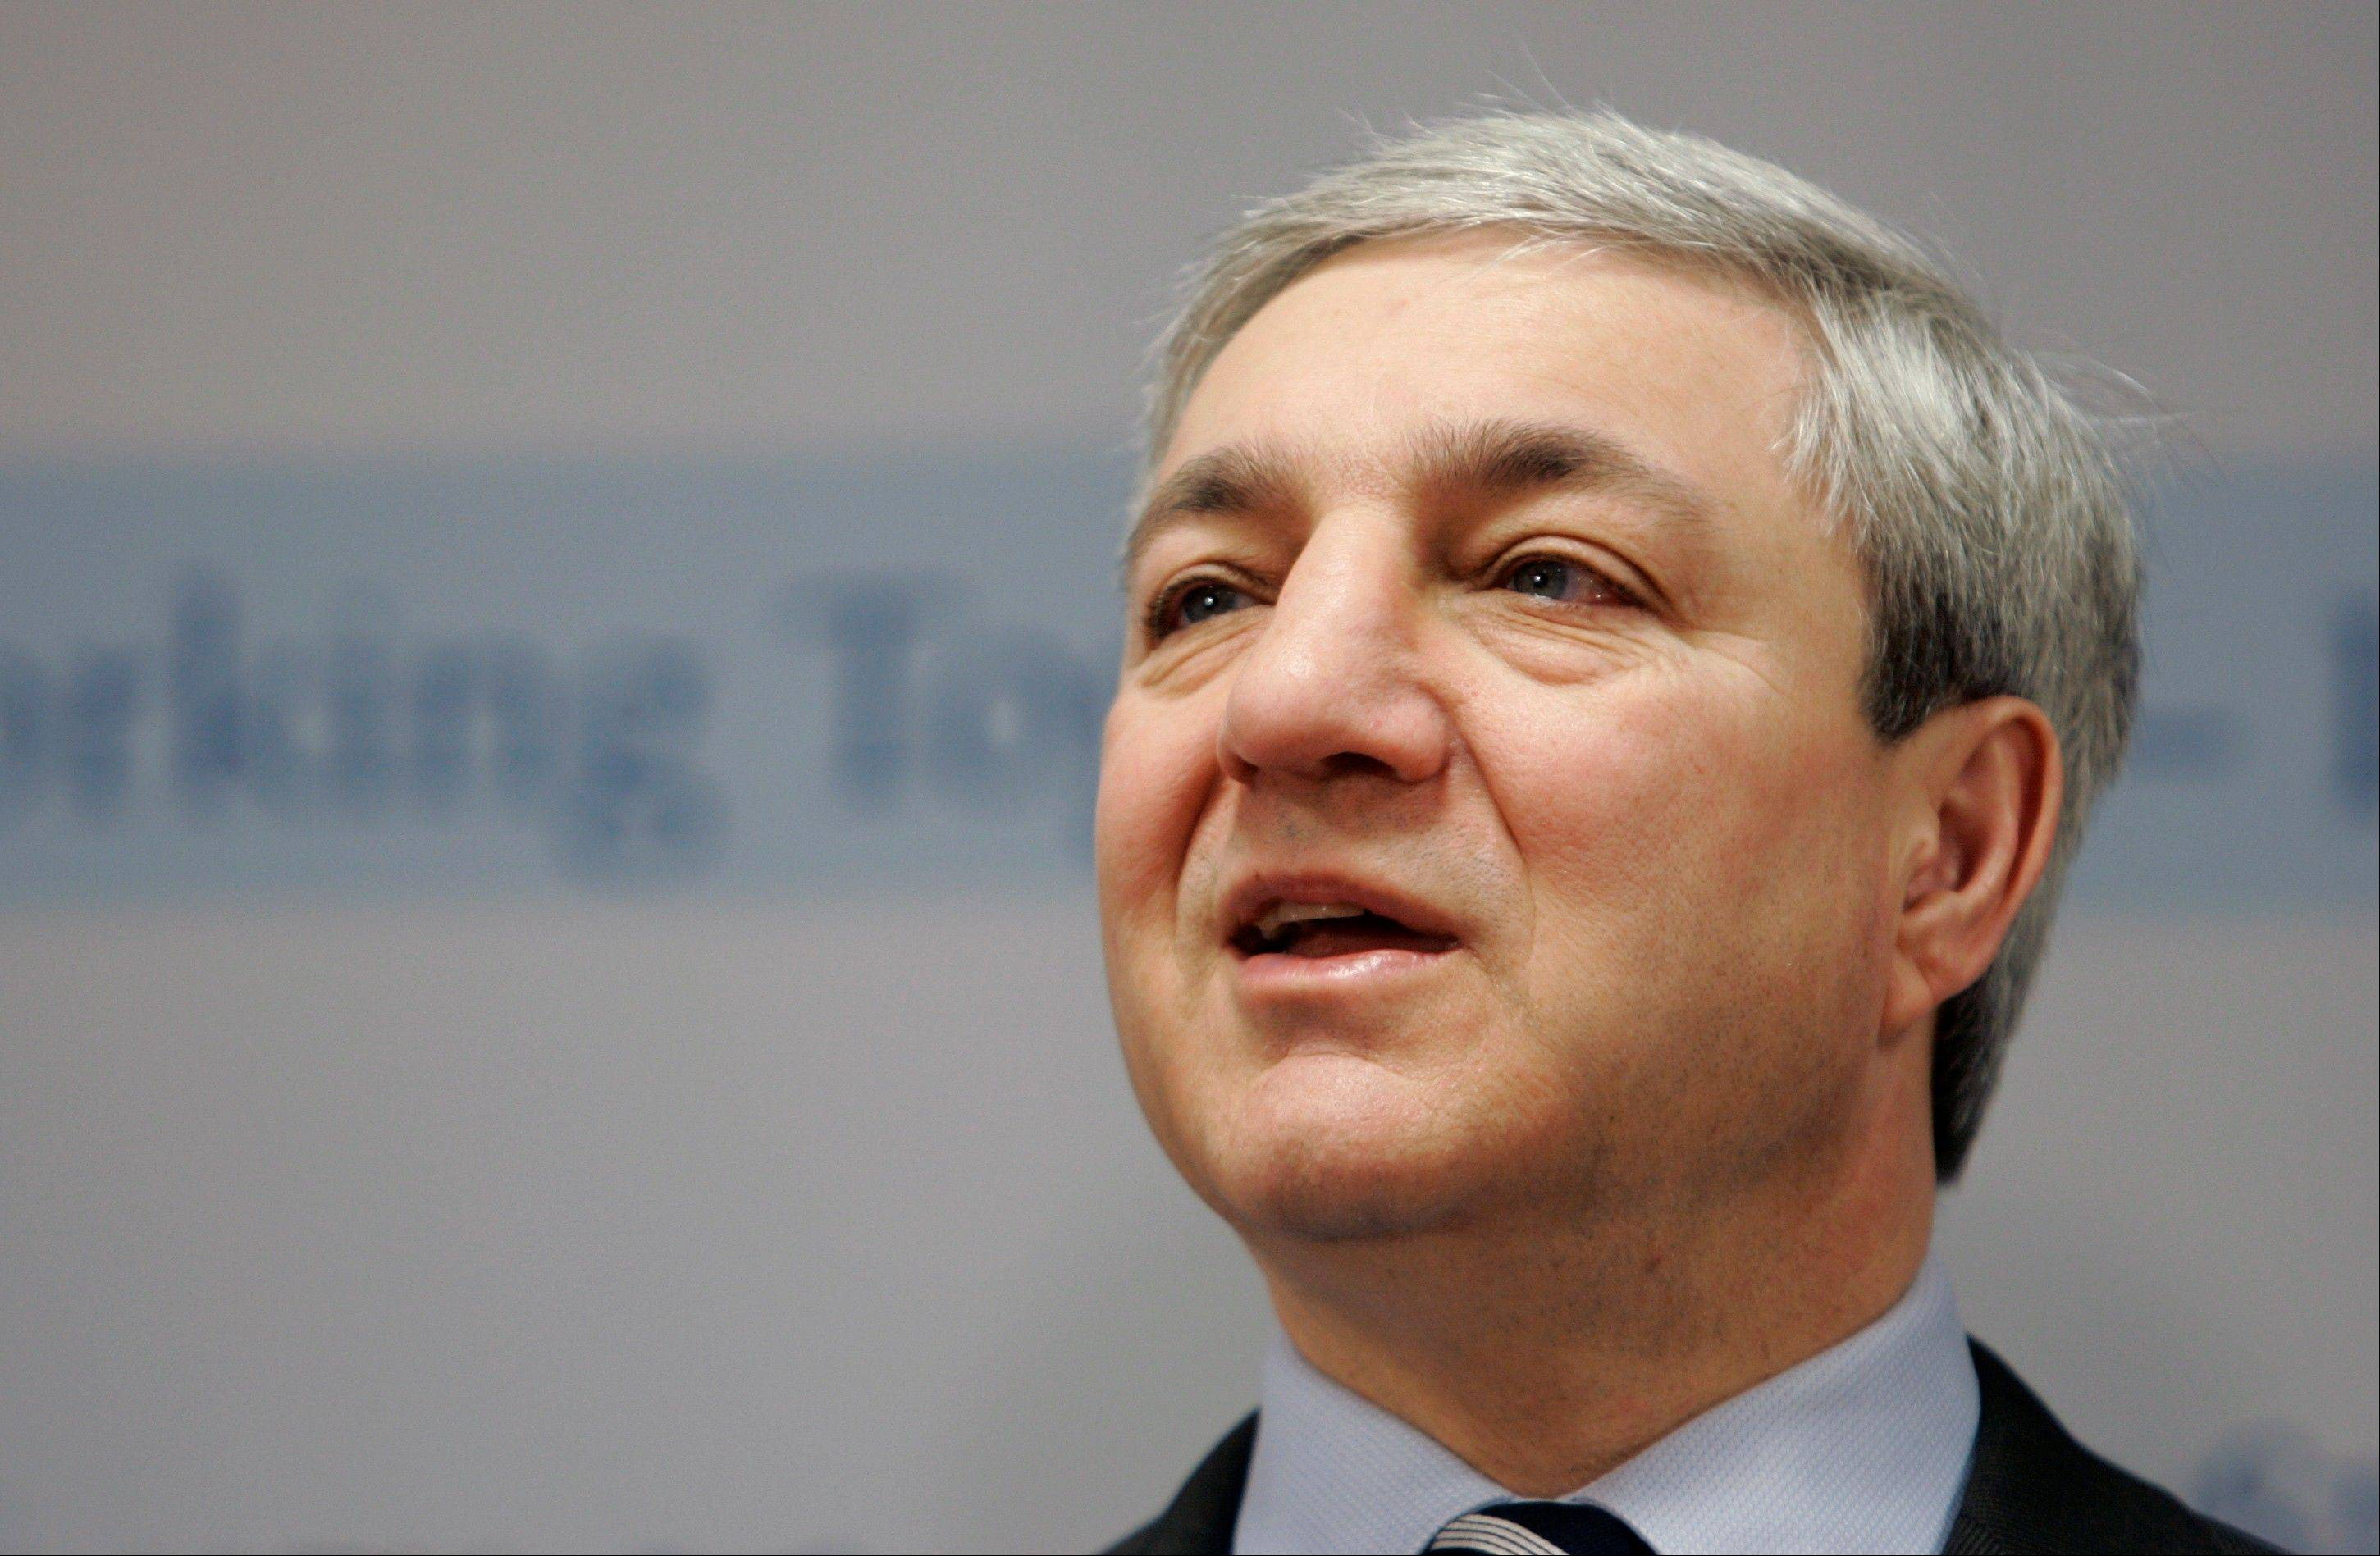 Attorneys for ousted Penn State President Graham Spanier planned Wednesday to dispute allegations he covered up reported child sex abuse involving convicted former assistant football coach Jerry Sandusky.